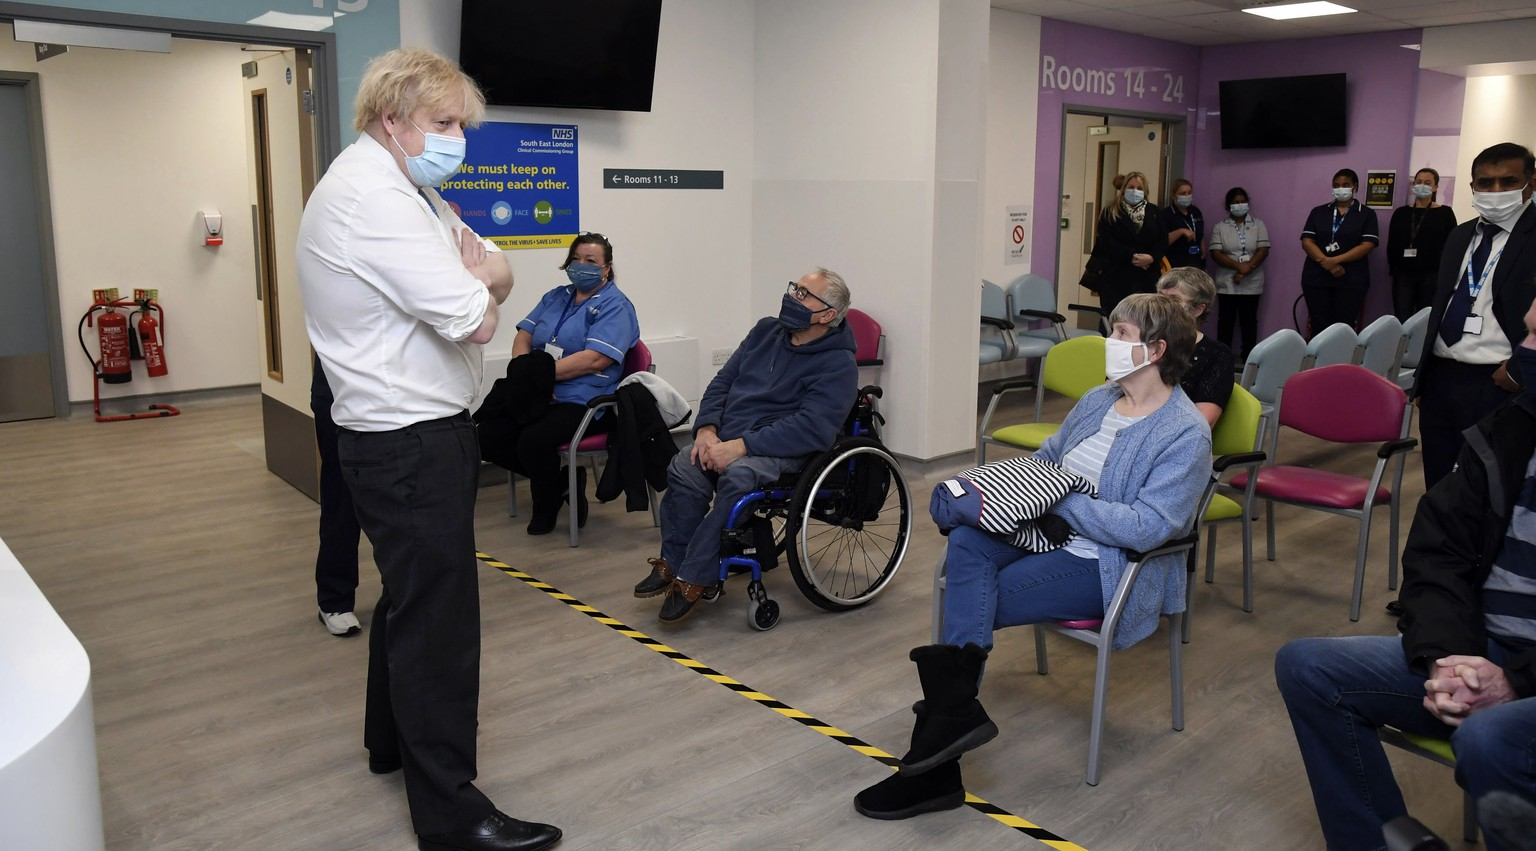 Britain's Prime Minister Boris Johnson meets people waiting for their vaccine during a visit to a coronavirus vaccination centre at the Health and Well-being Centre in Orpington, south-east London, Monday, Feb. 15, 2021. (Jeremy Selwyn/Pool Photo via AP)